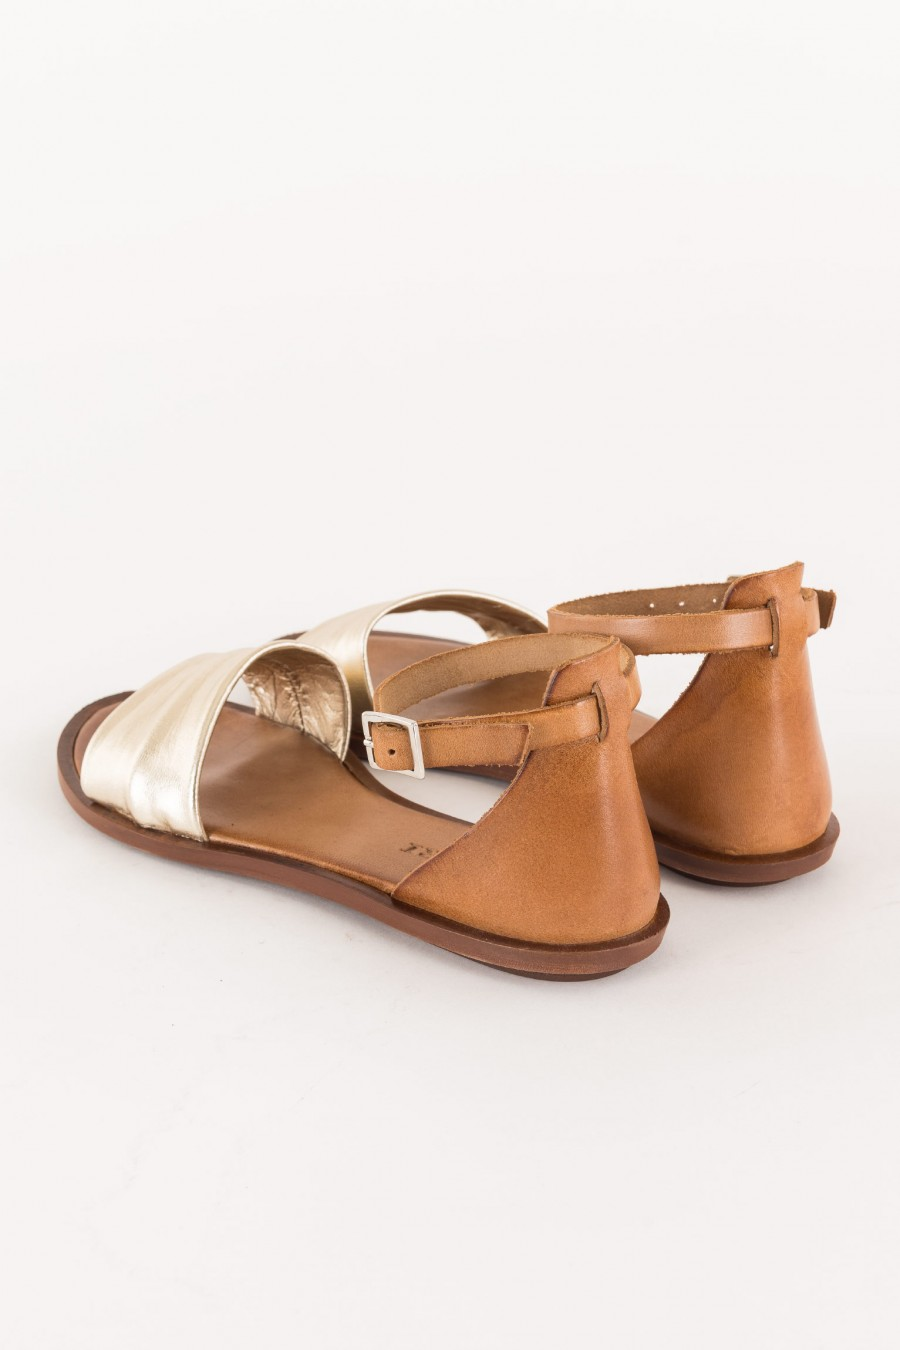 leather-colored sandal with platinum band